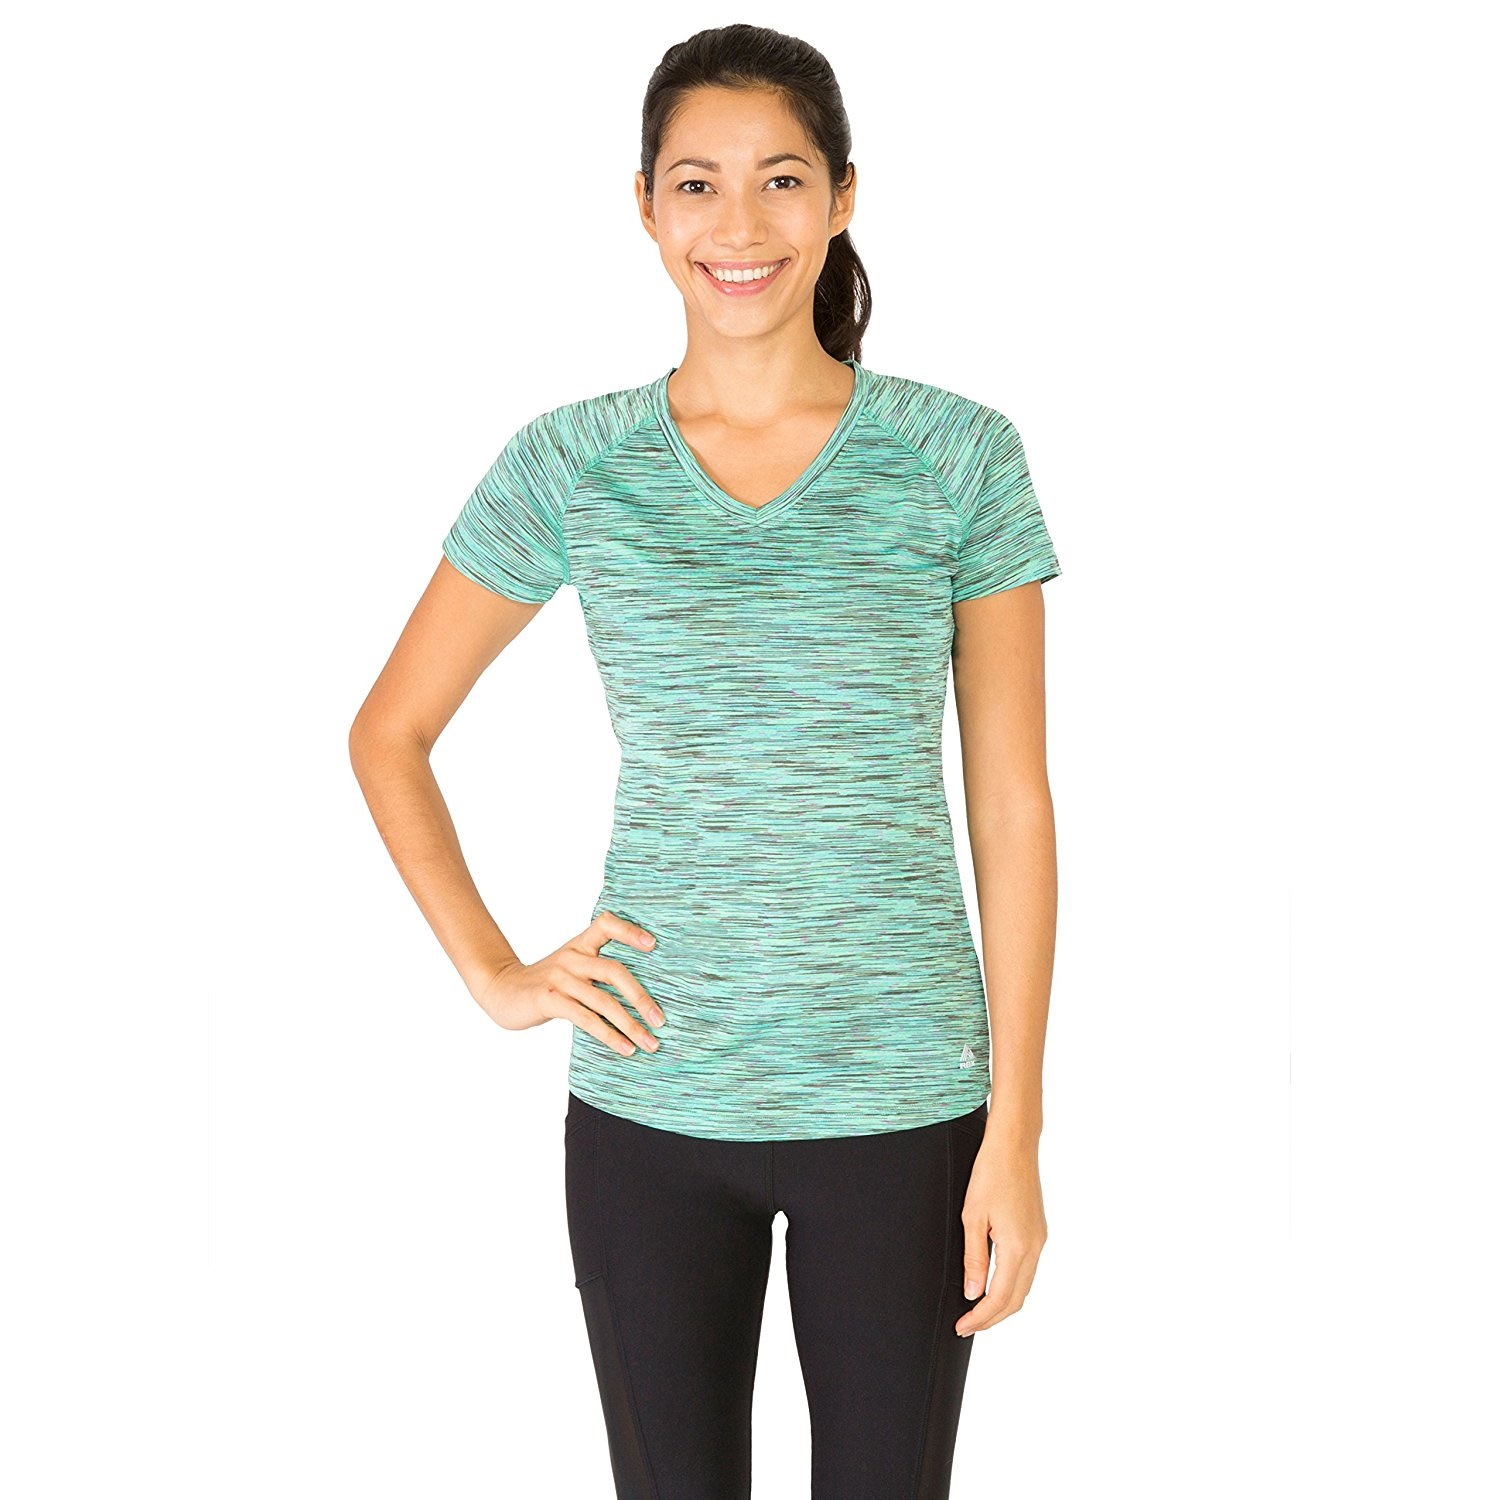 rbx womens space dye short sleeve v-neck aqua green space yoga tee shirt